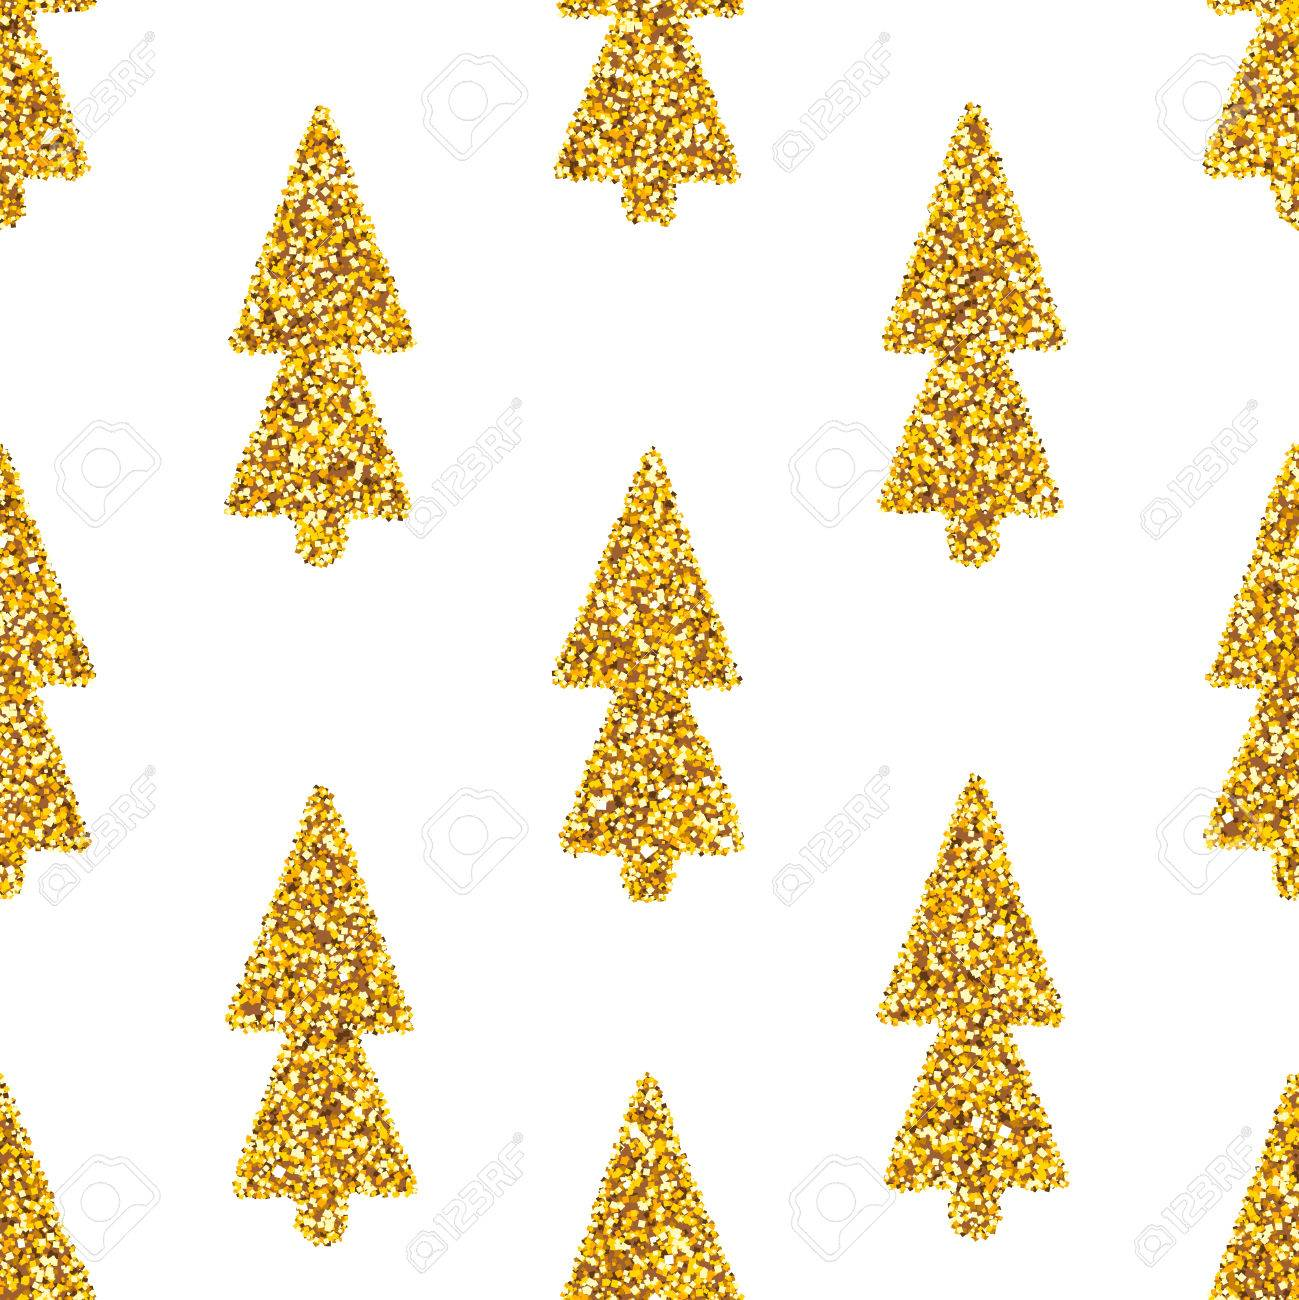 white seamless pattern with glam golden glitter christmas trees shiny gold spruce abstract background - Glitter Christmas Tree